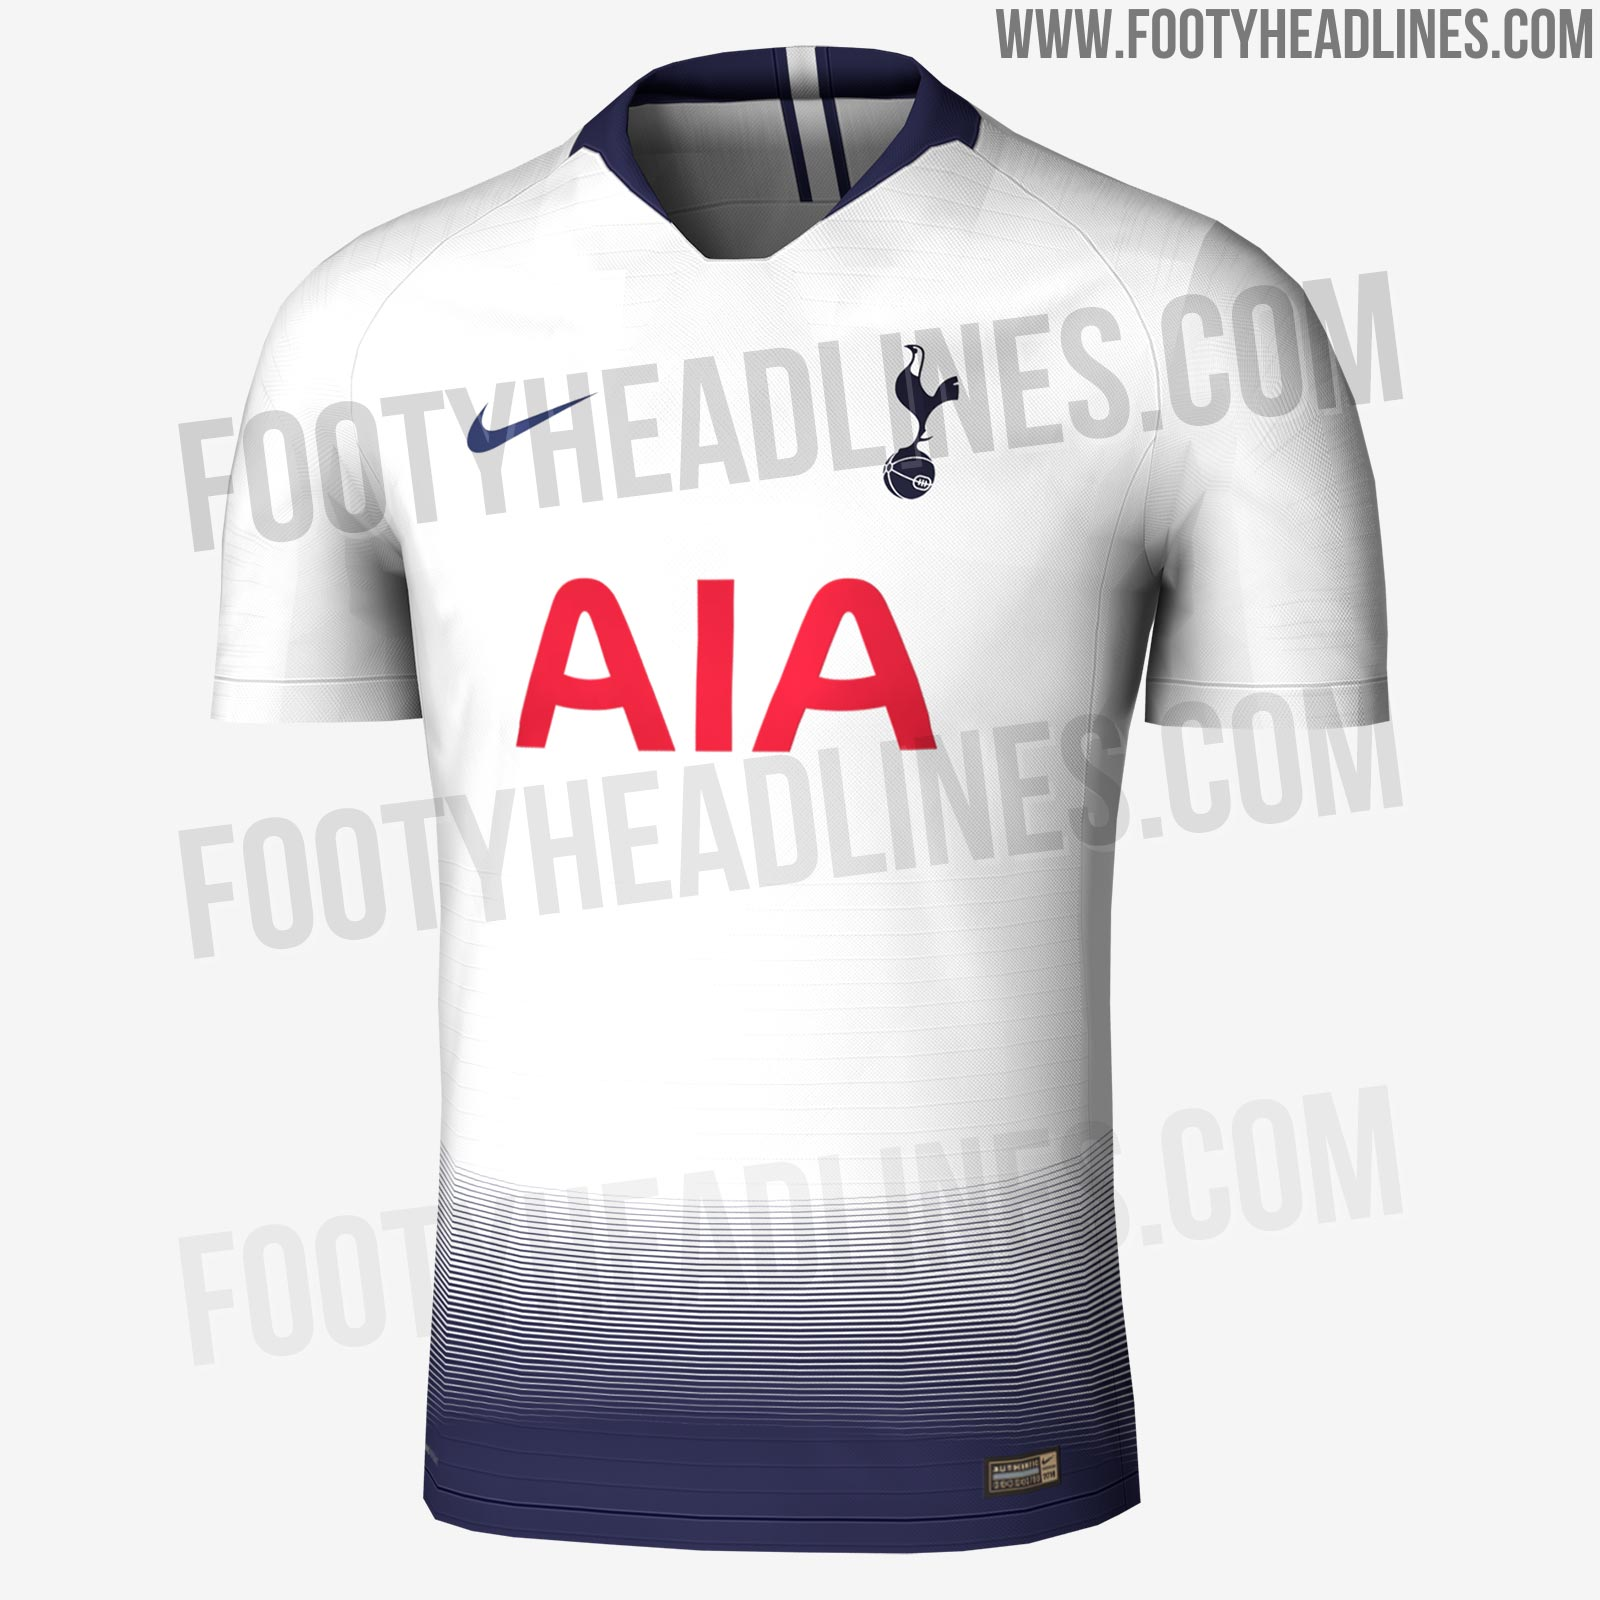 tottenham-18-19-home-kit-2.jpg